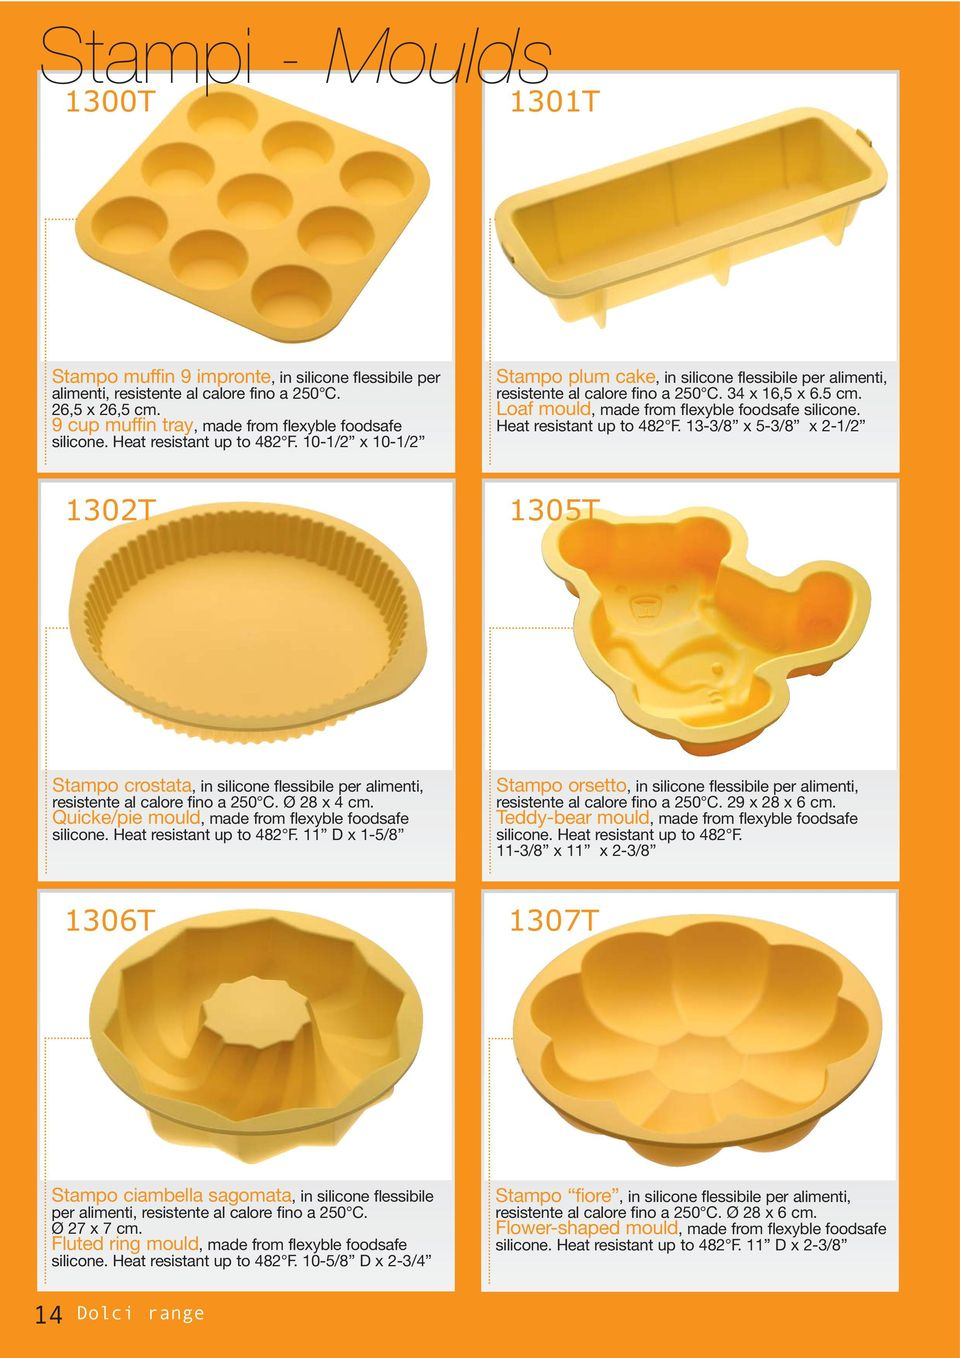 Loaf mould, made from flexyble foodsafe silicone. Heat resistant up to 482 F.